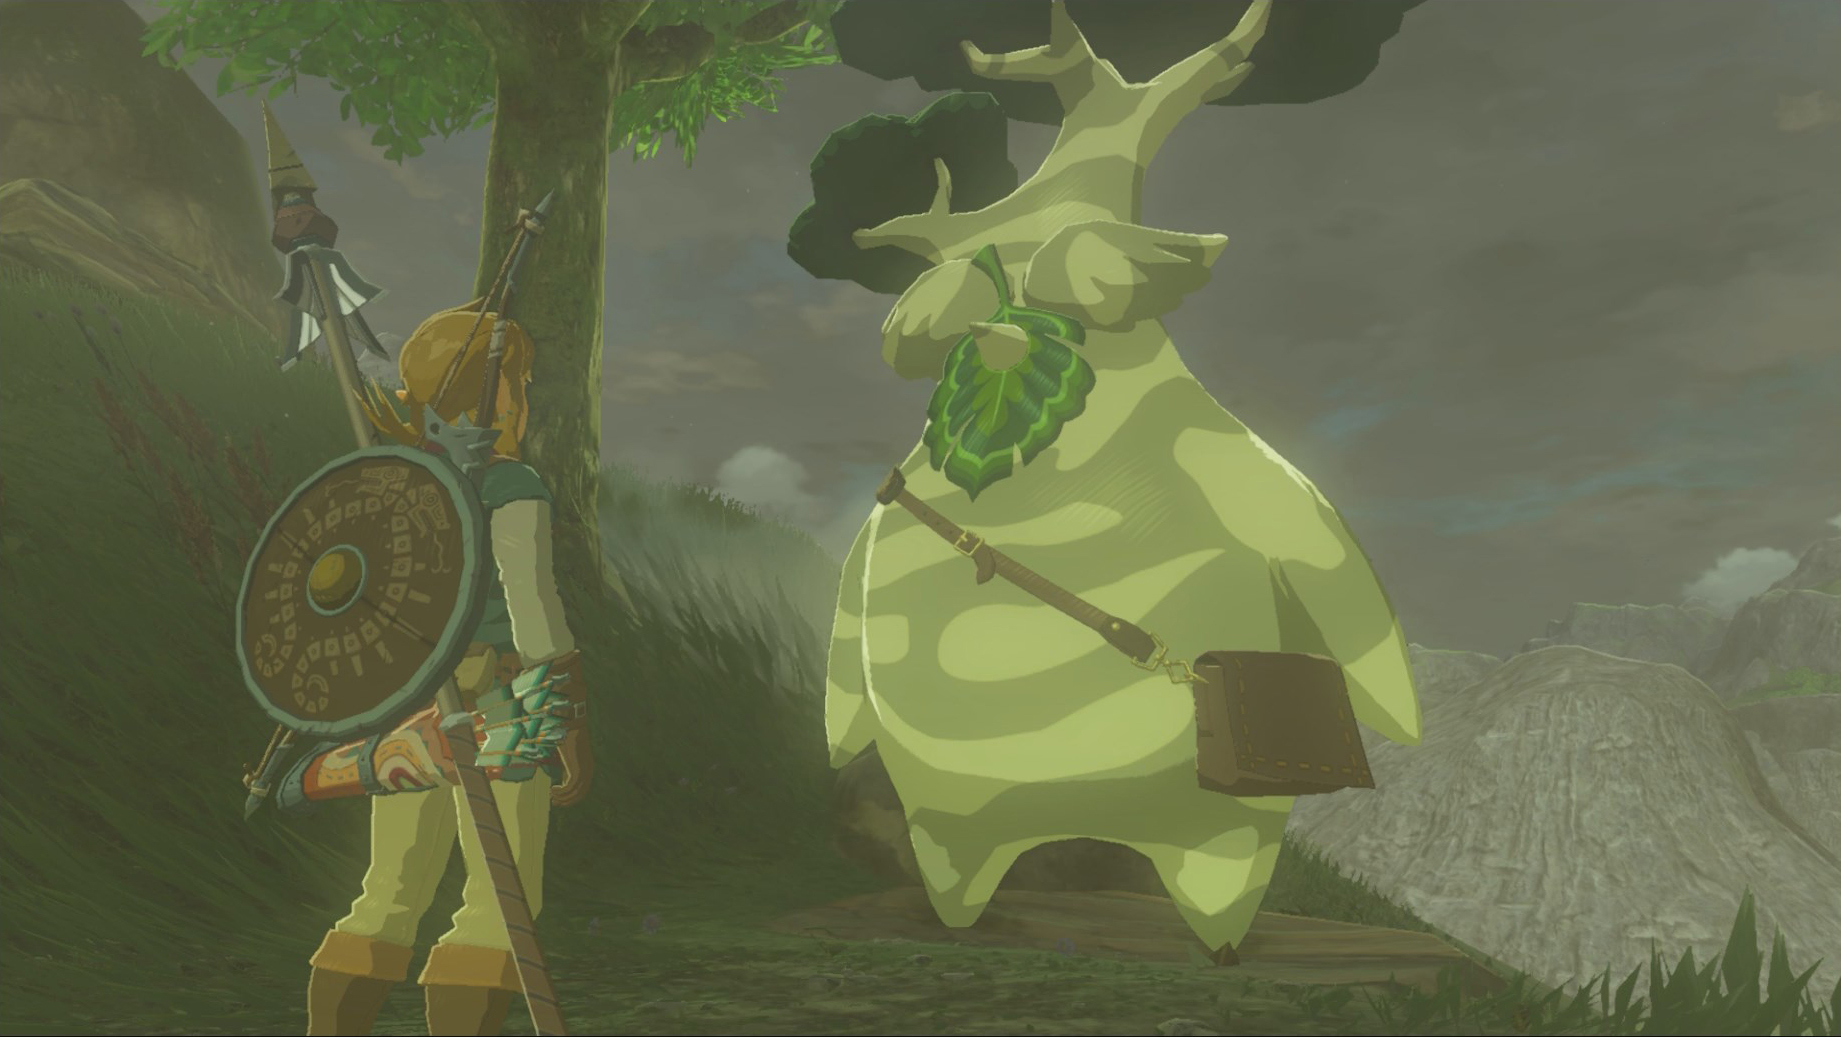 image relating to Printable Korok Seed Map known as Breath of the Wild Korok Seed Places - Zelda Dungeon